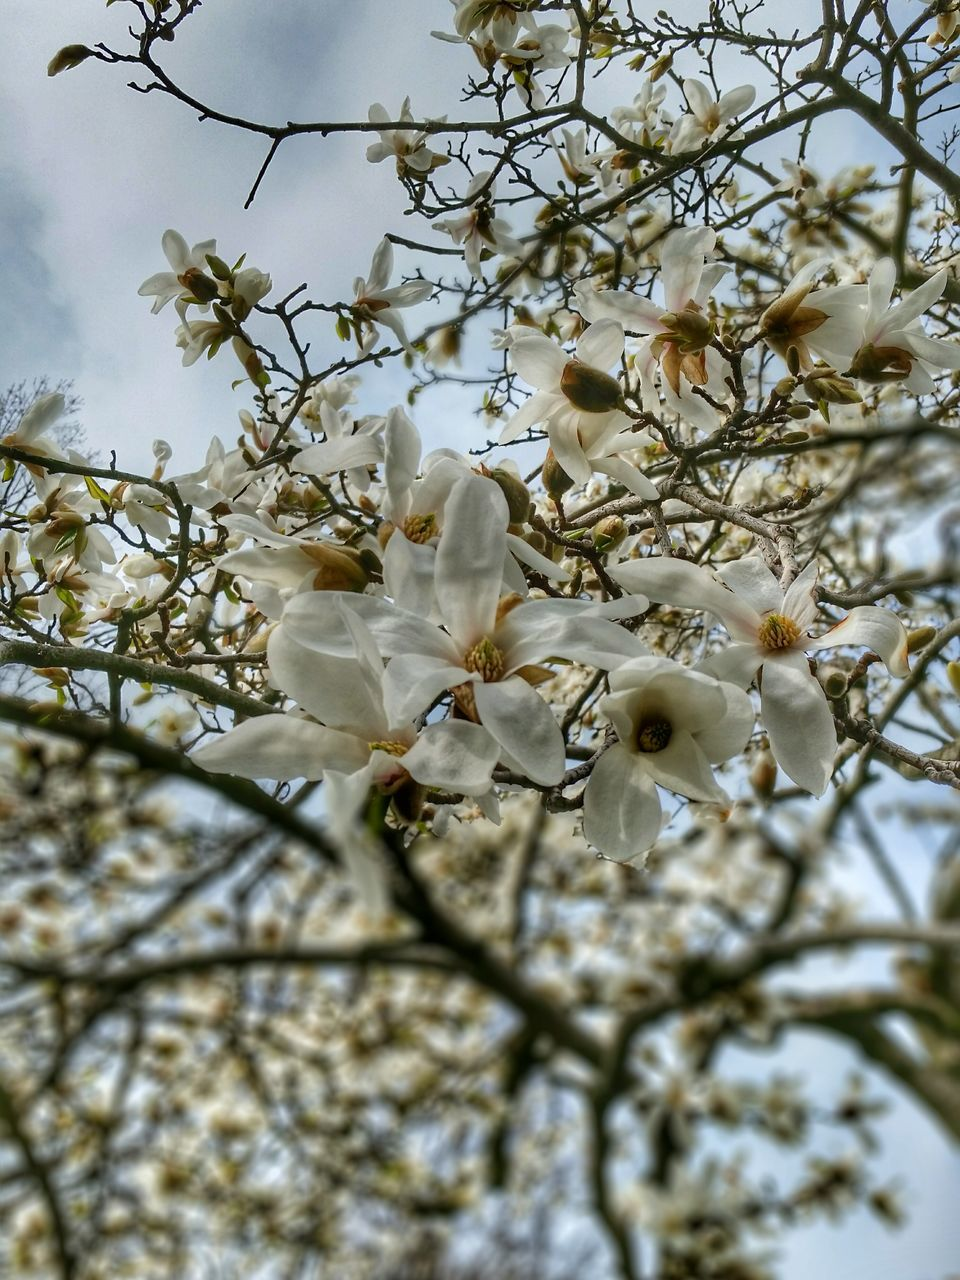 Low Angle View Of White Flowers Blooming On Tree Branches